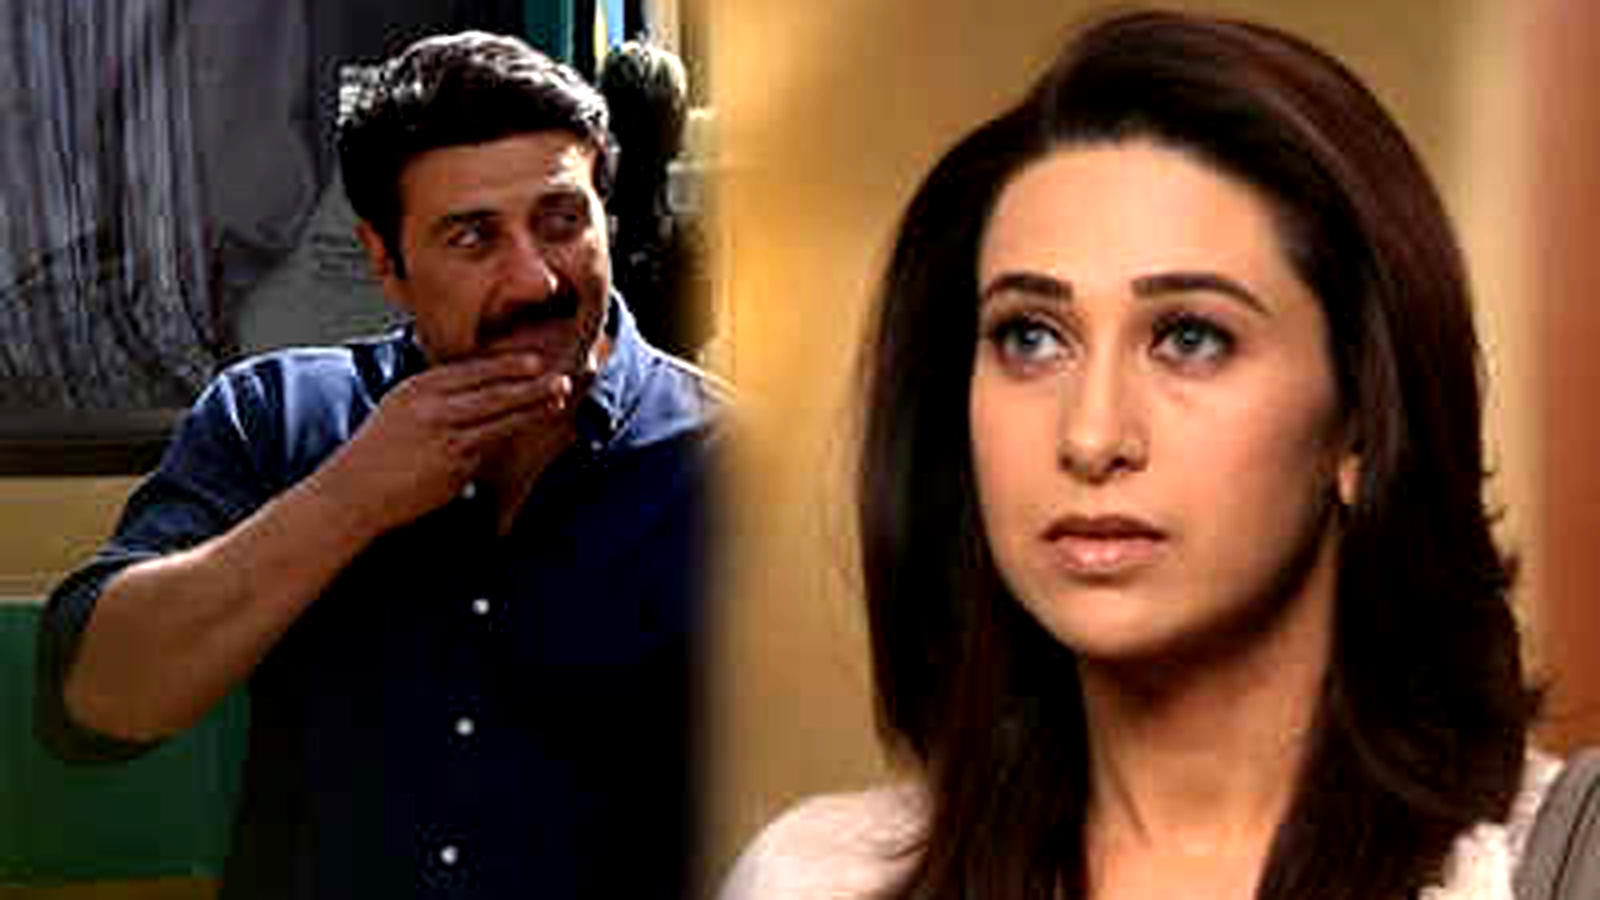 1997-chain-pulling-sunny-deol-karisma-kapoor-acquitted-in-22-year-old-case